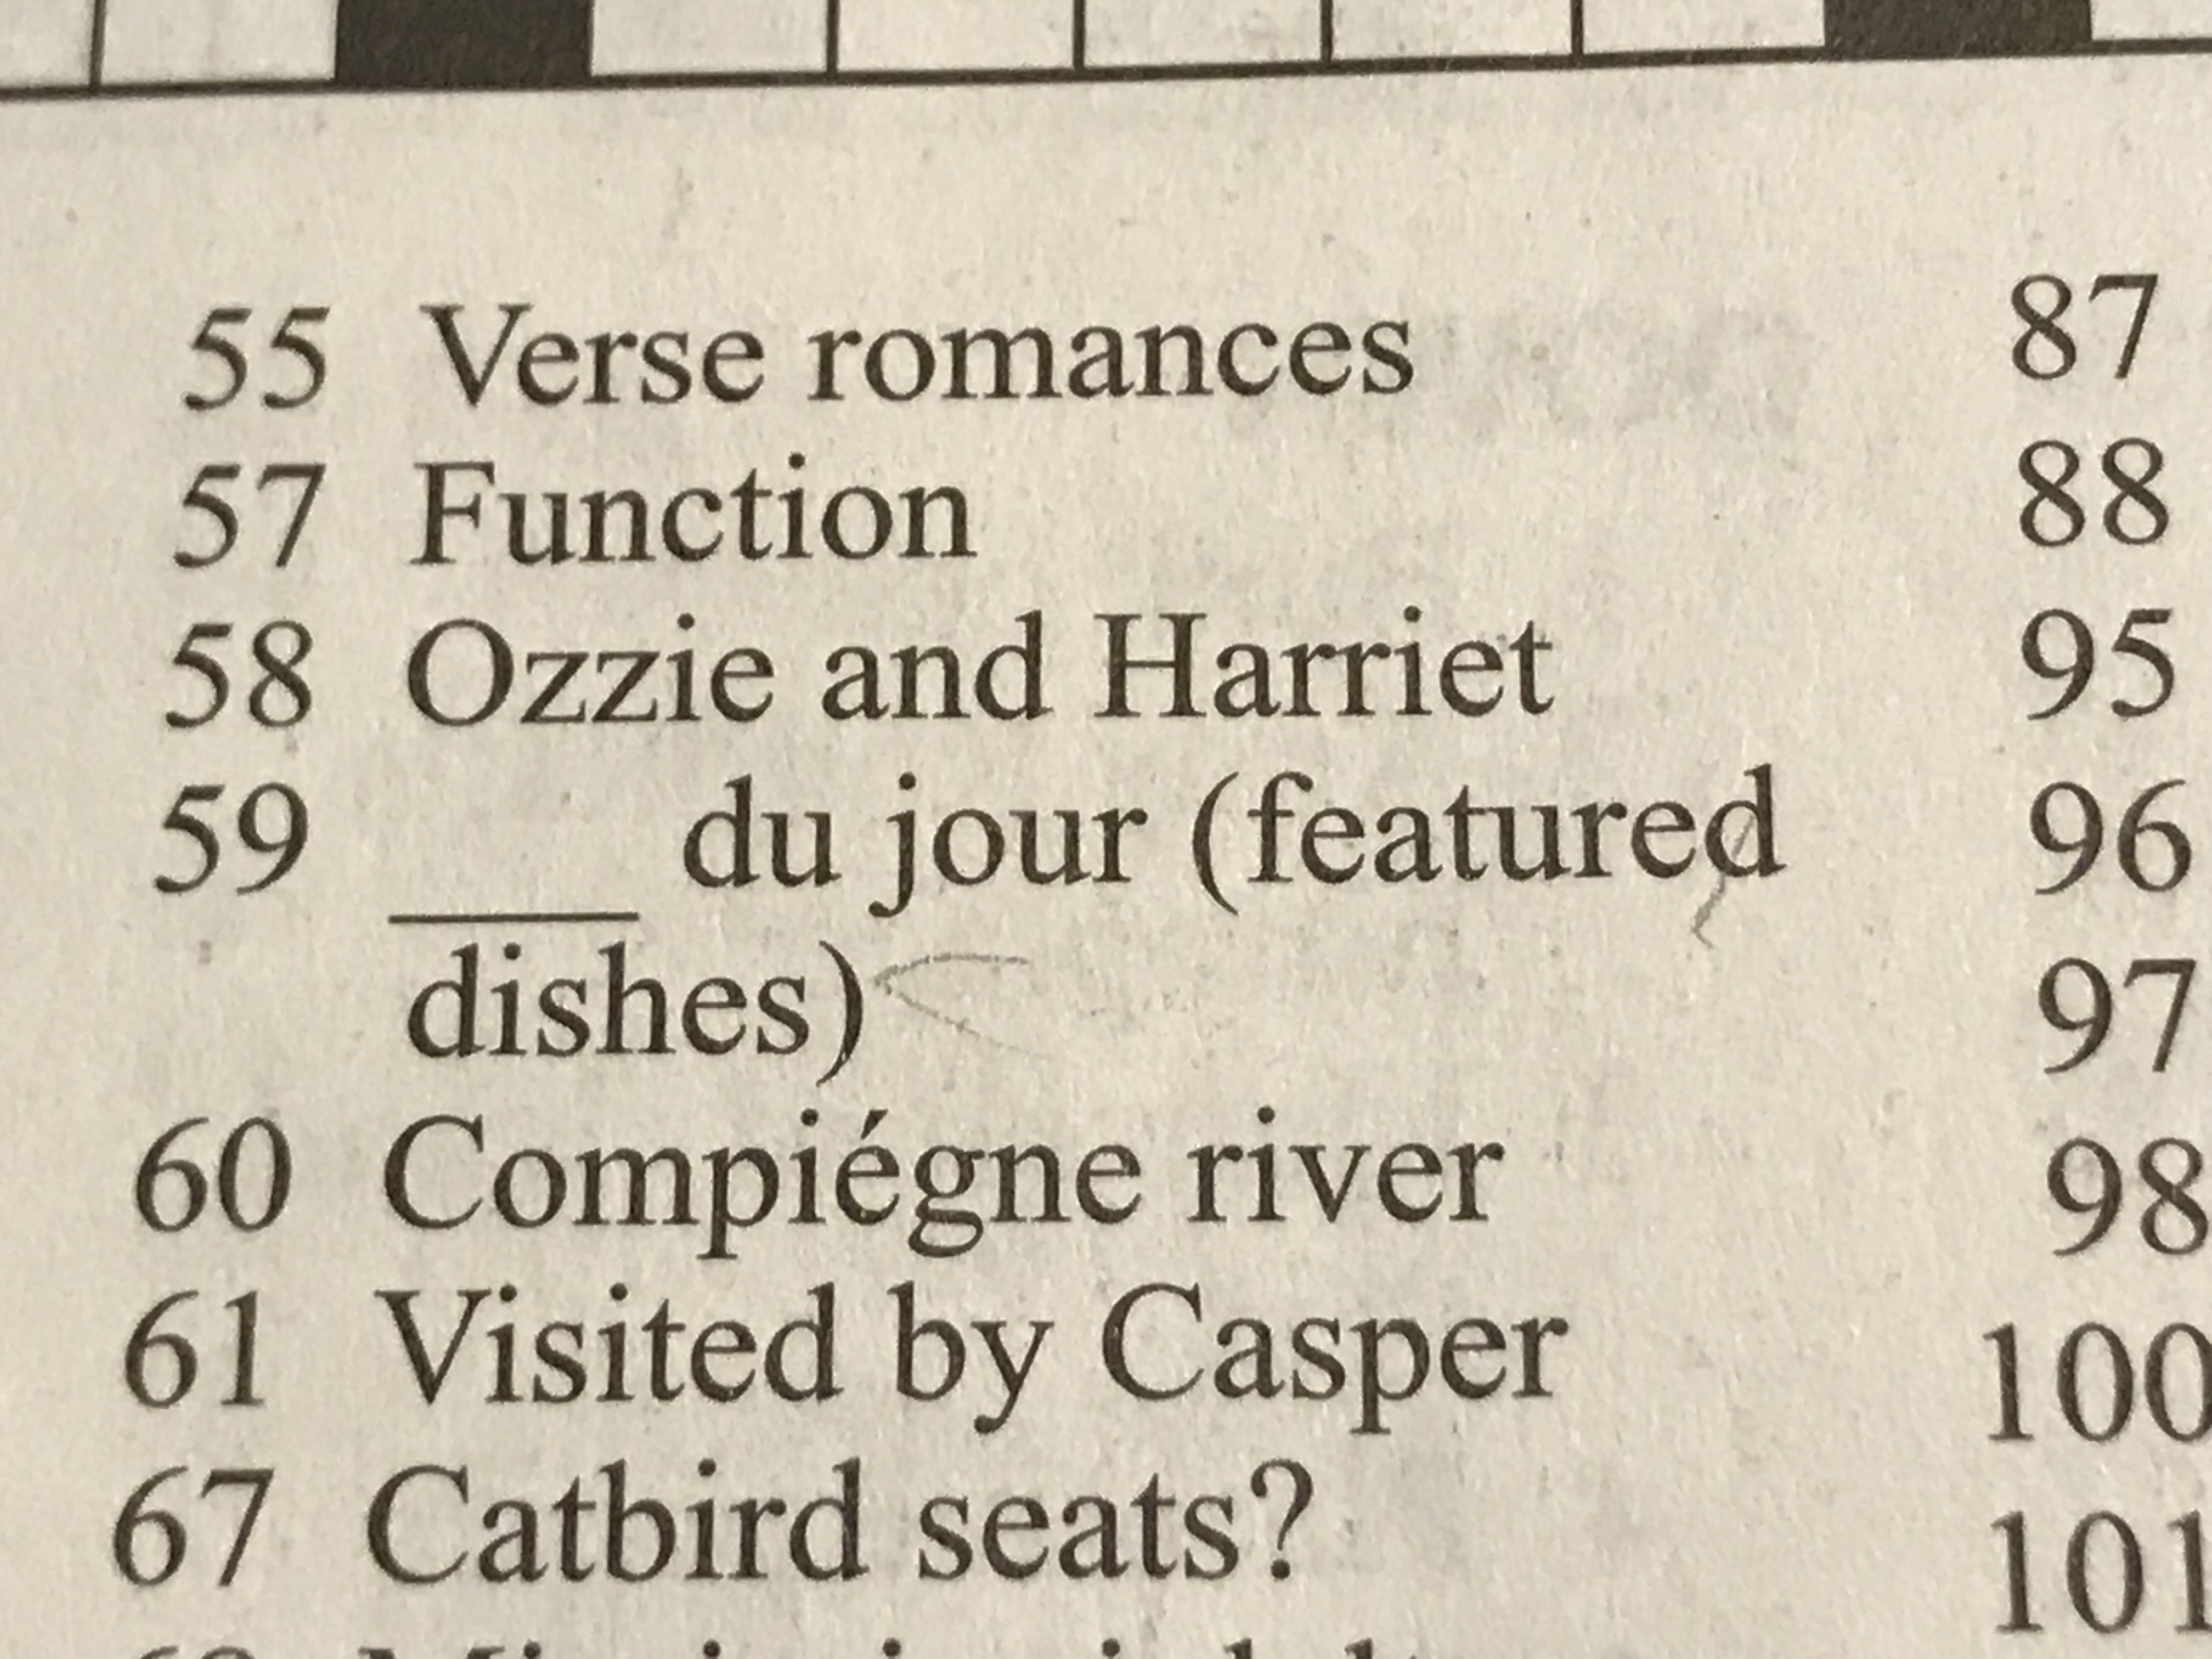 being the nerd that I am, I took a break and worked a crossword puzzle: